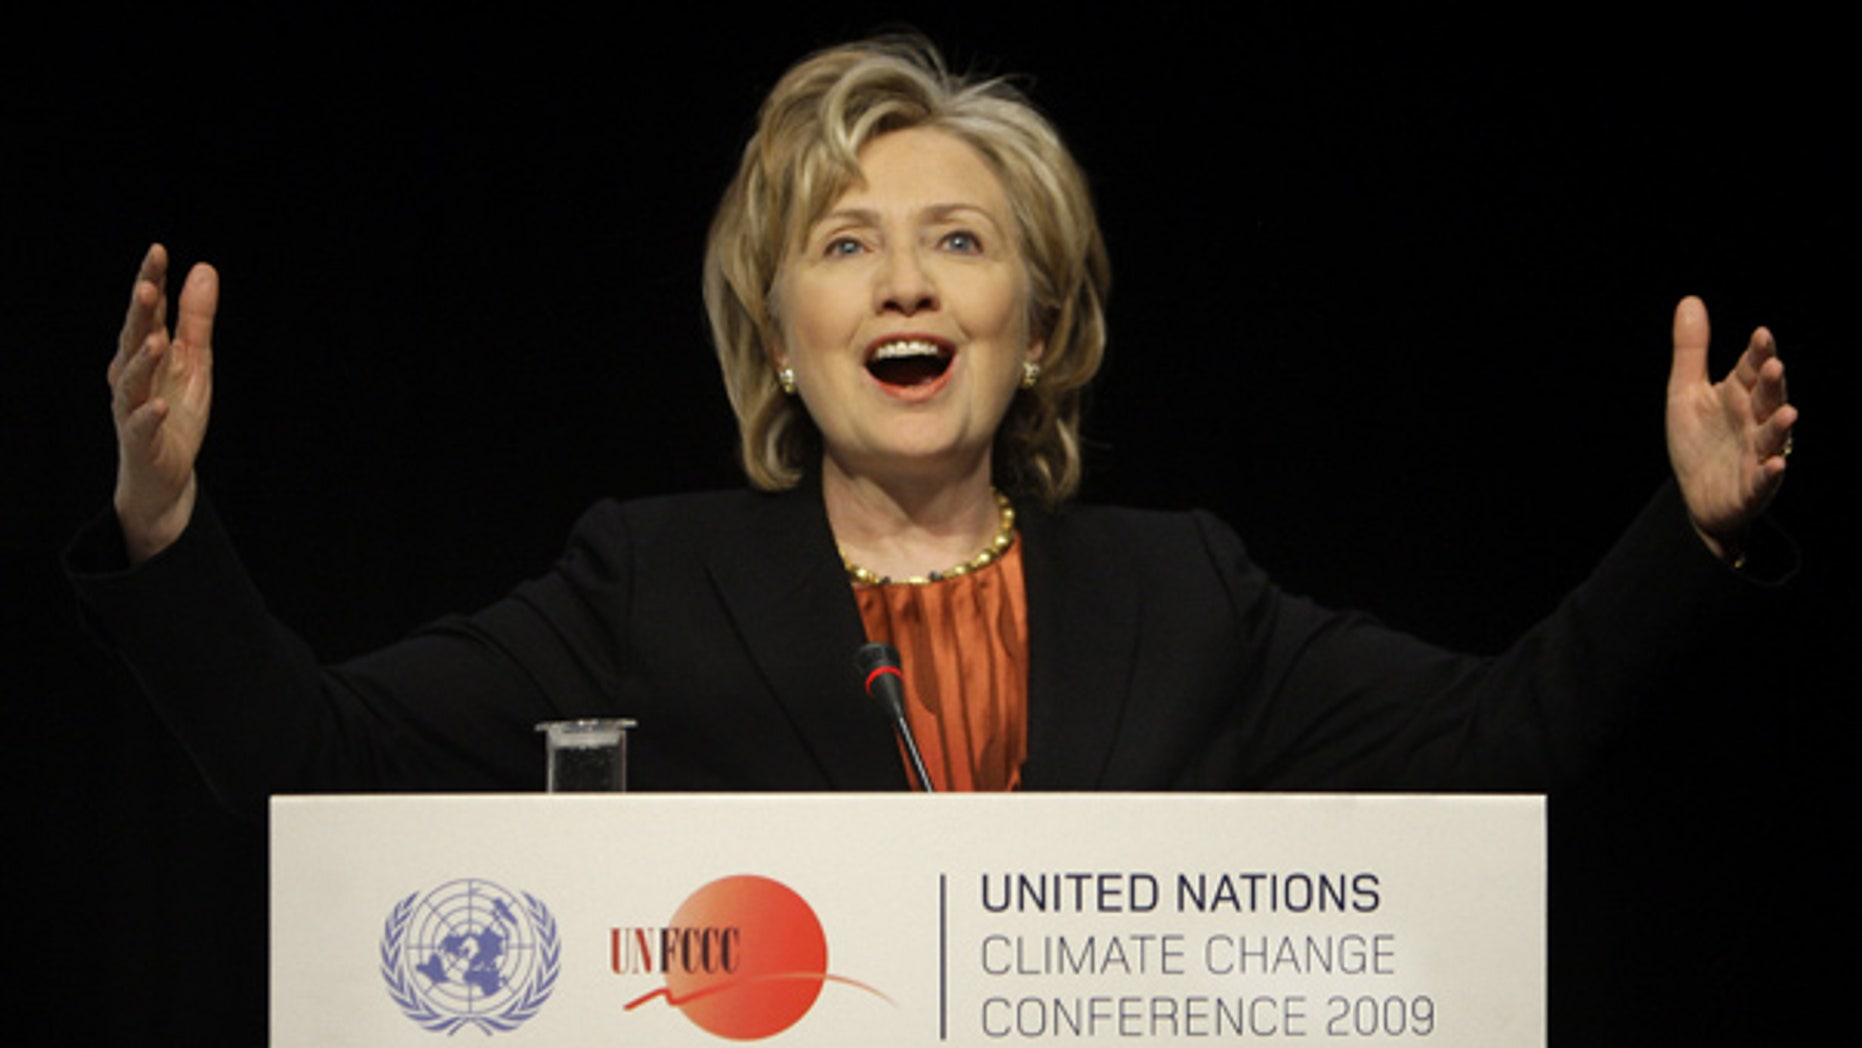 Dec. 17: Secretary of State Hillary Clinton gestures during a press briefing at the climate summit in Copenhagen, Denmark. (AP)